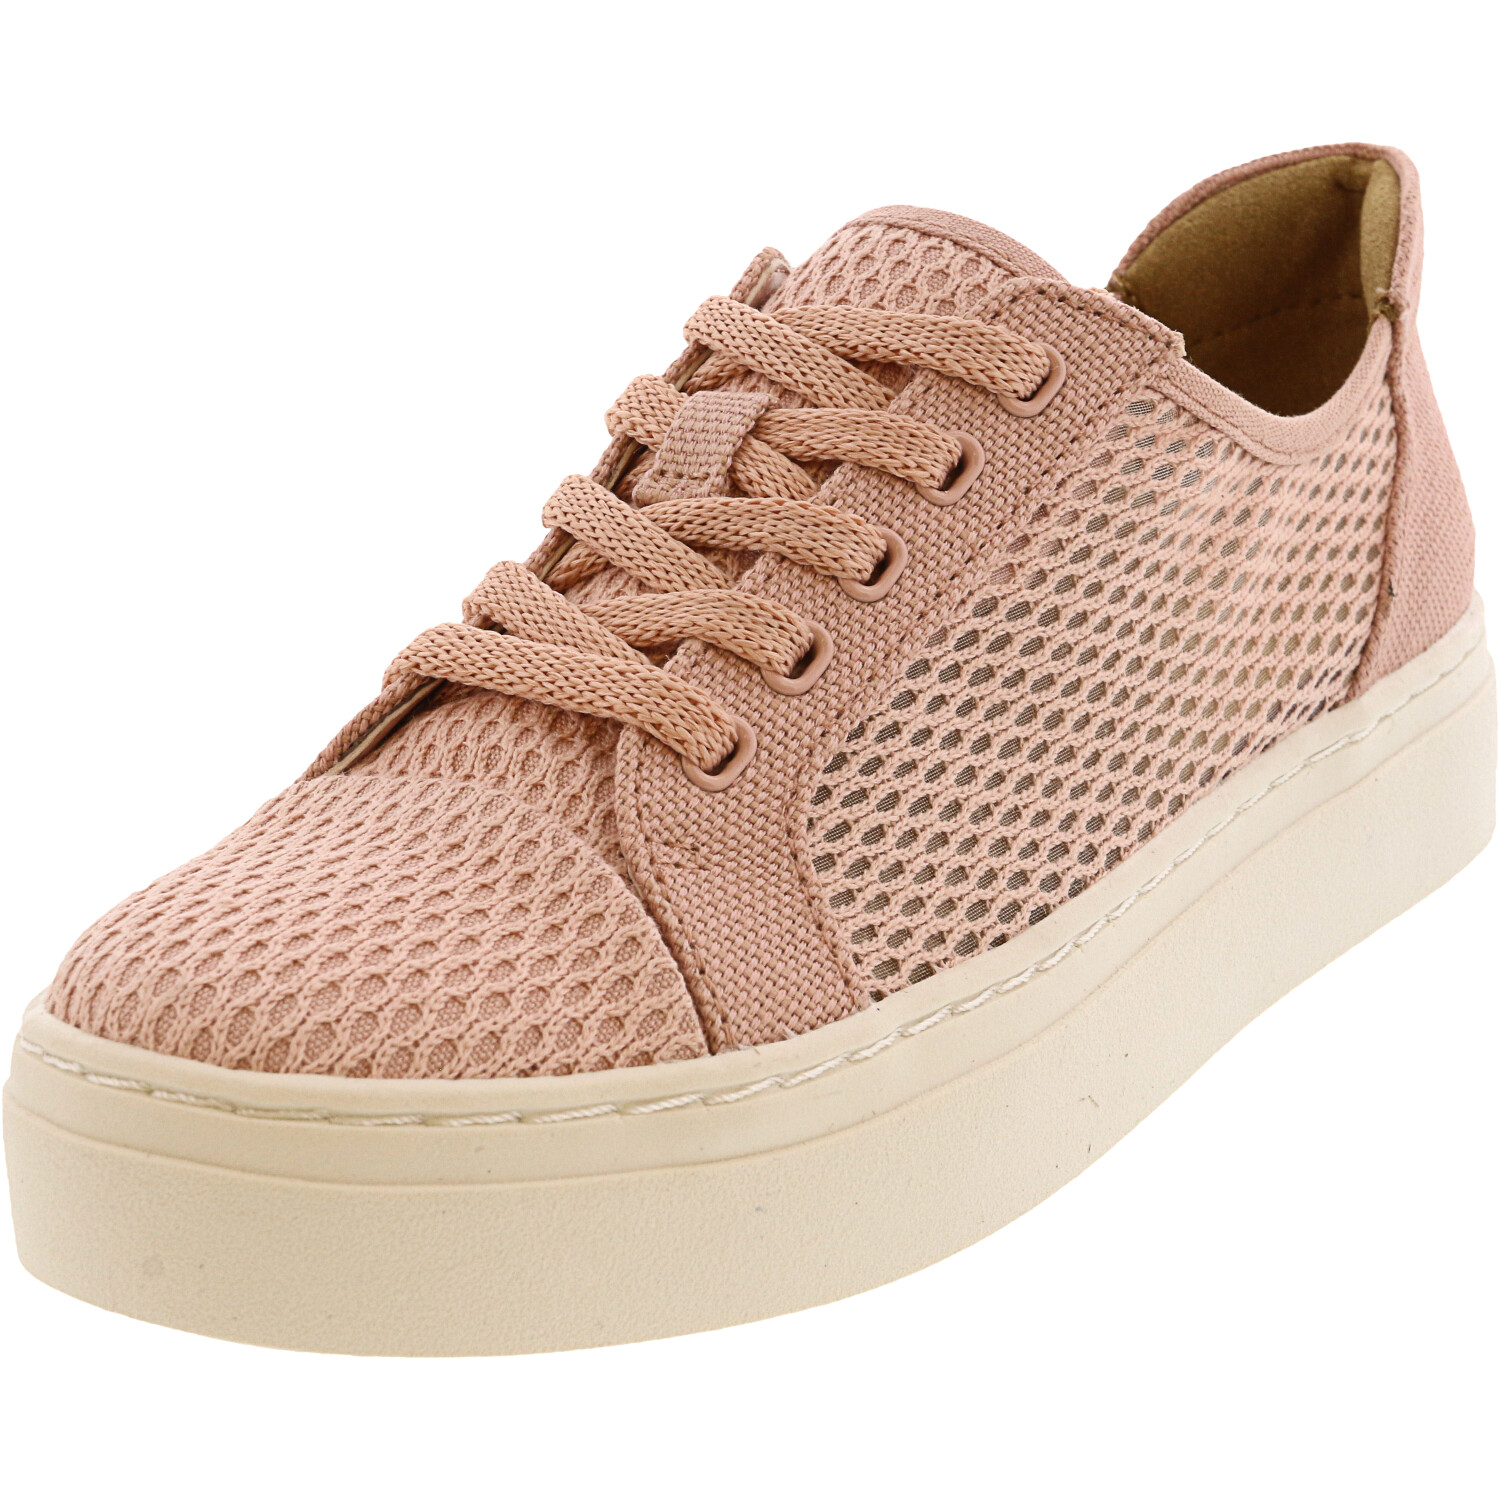 Naturalizer Women's Cairo 4 Rose Pink Ankle-High Fabric Sneaker - 4.5M